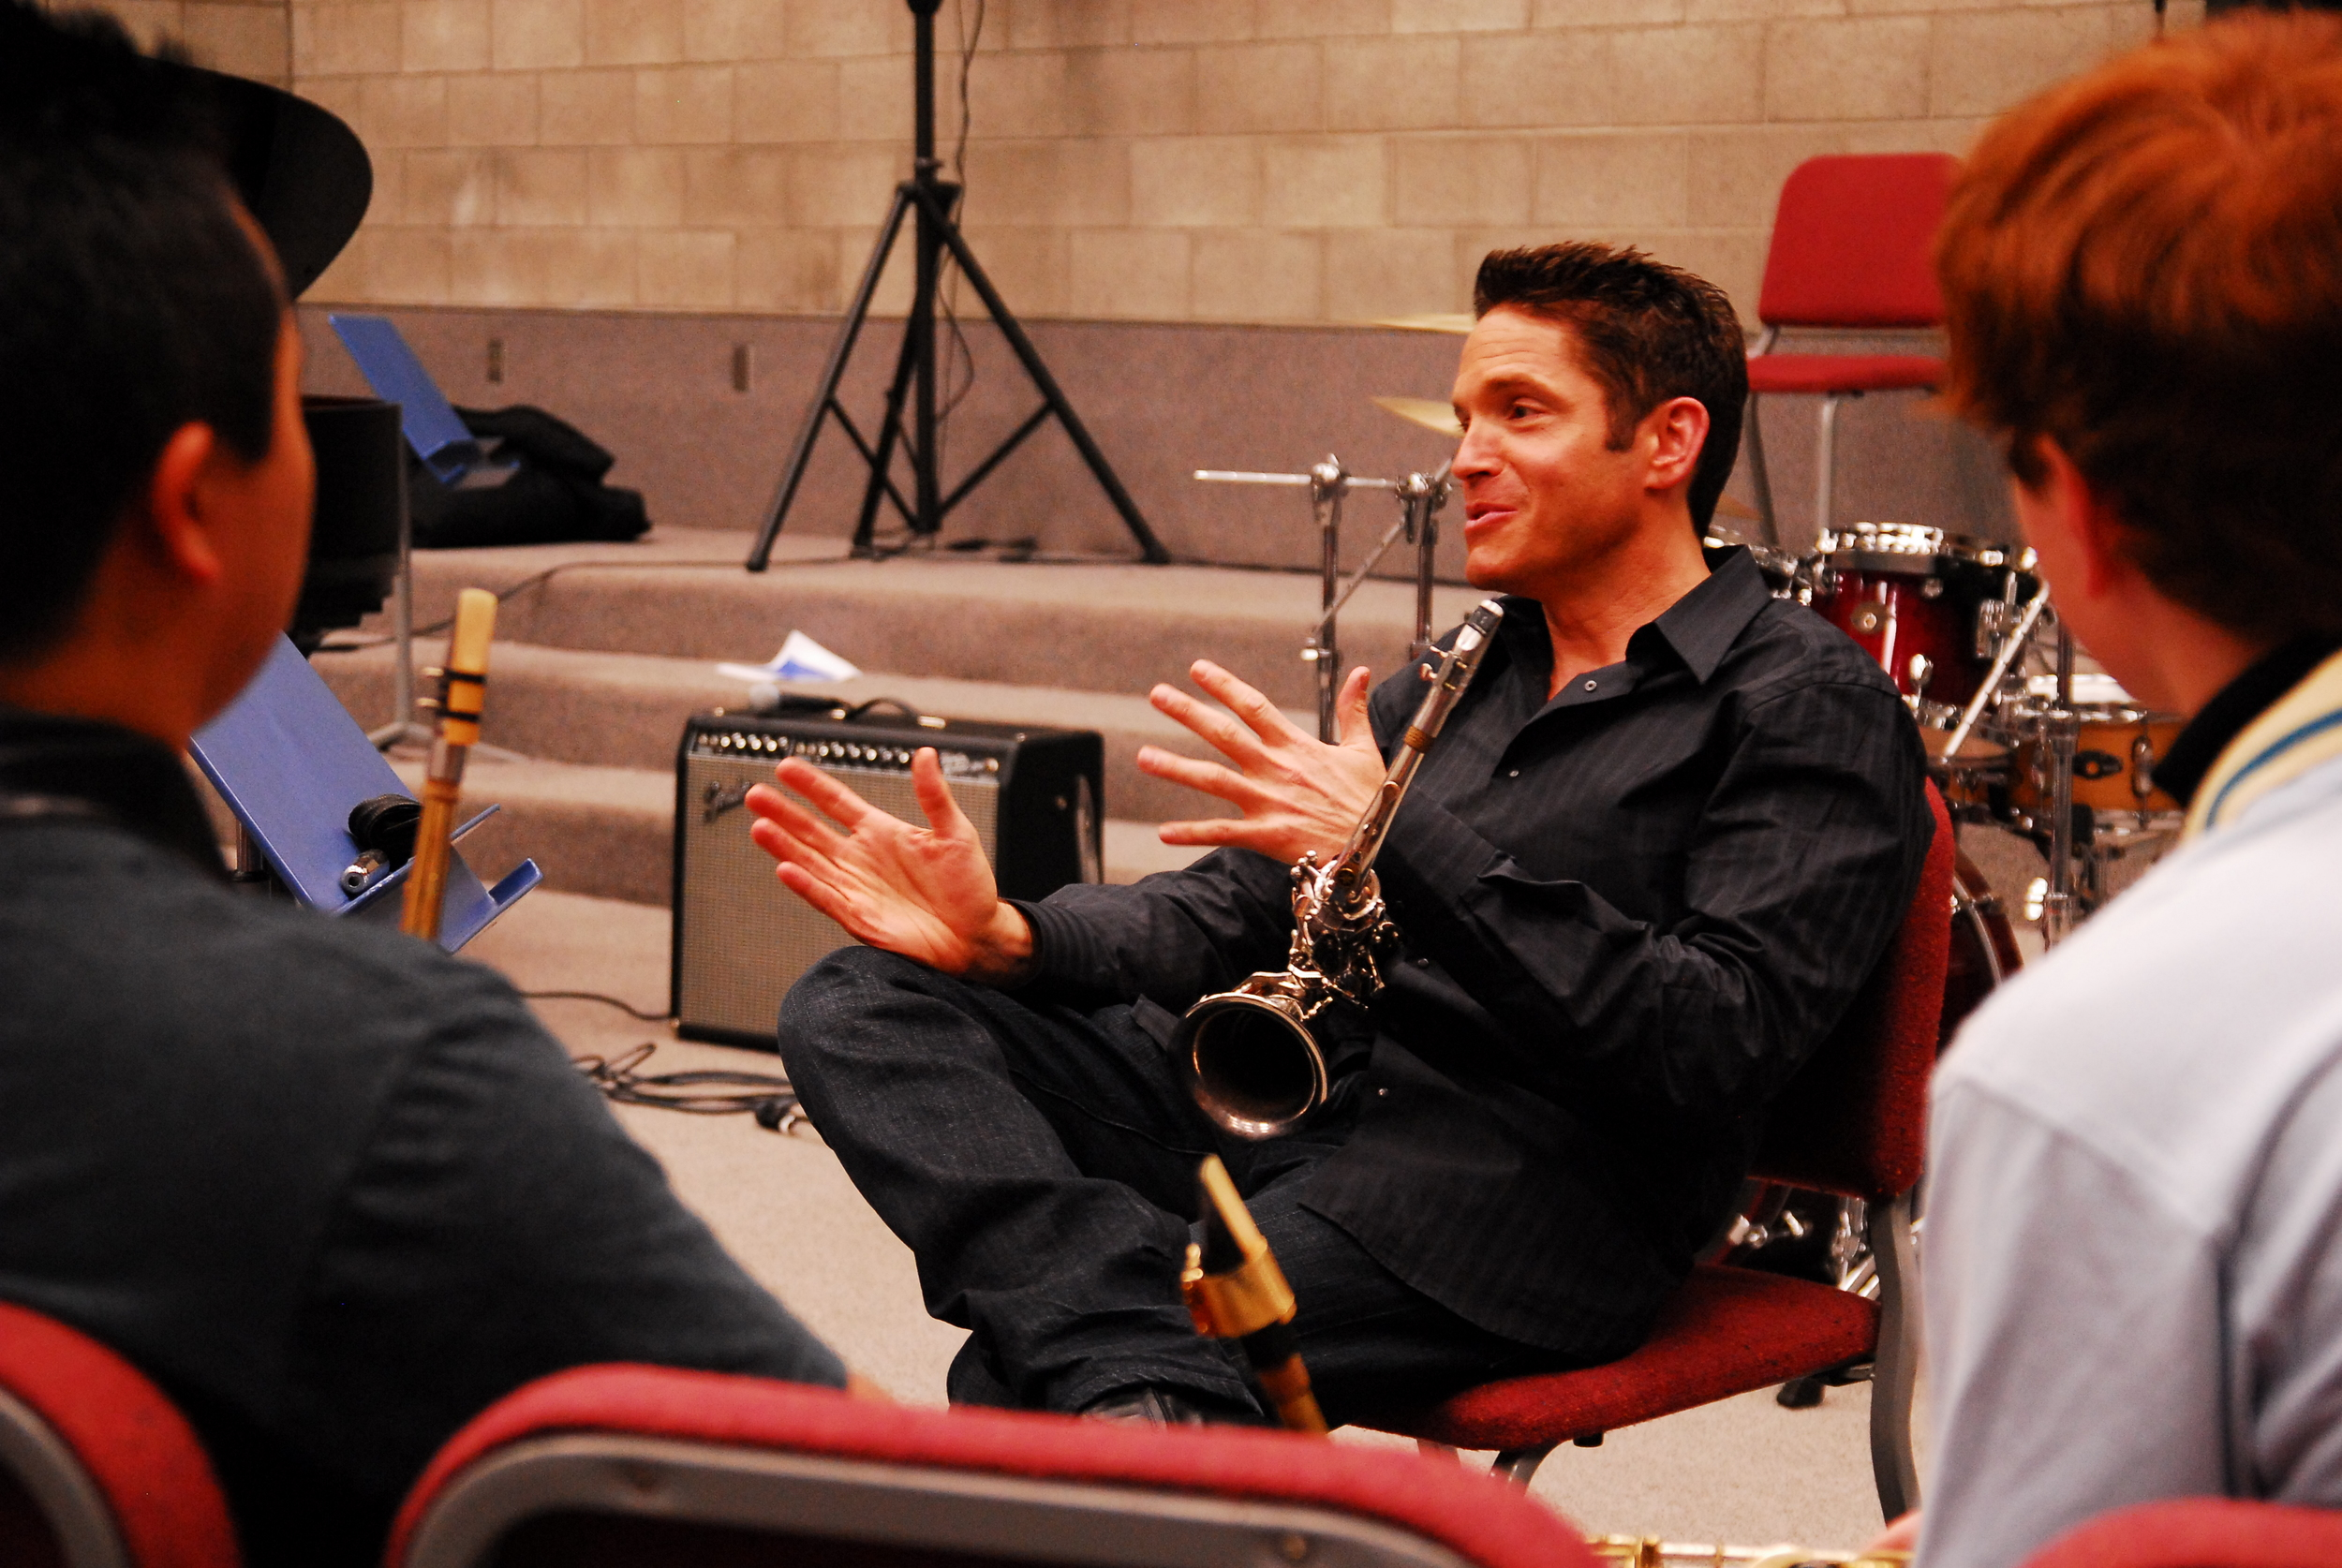 Dave Koz leads a Meet The Artist Session